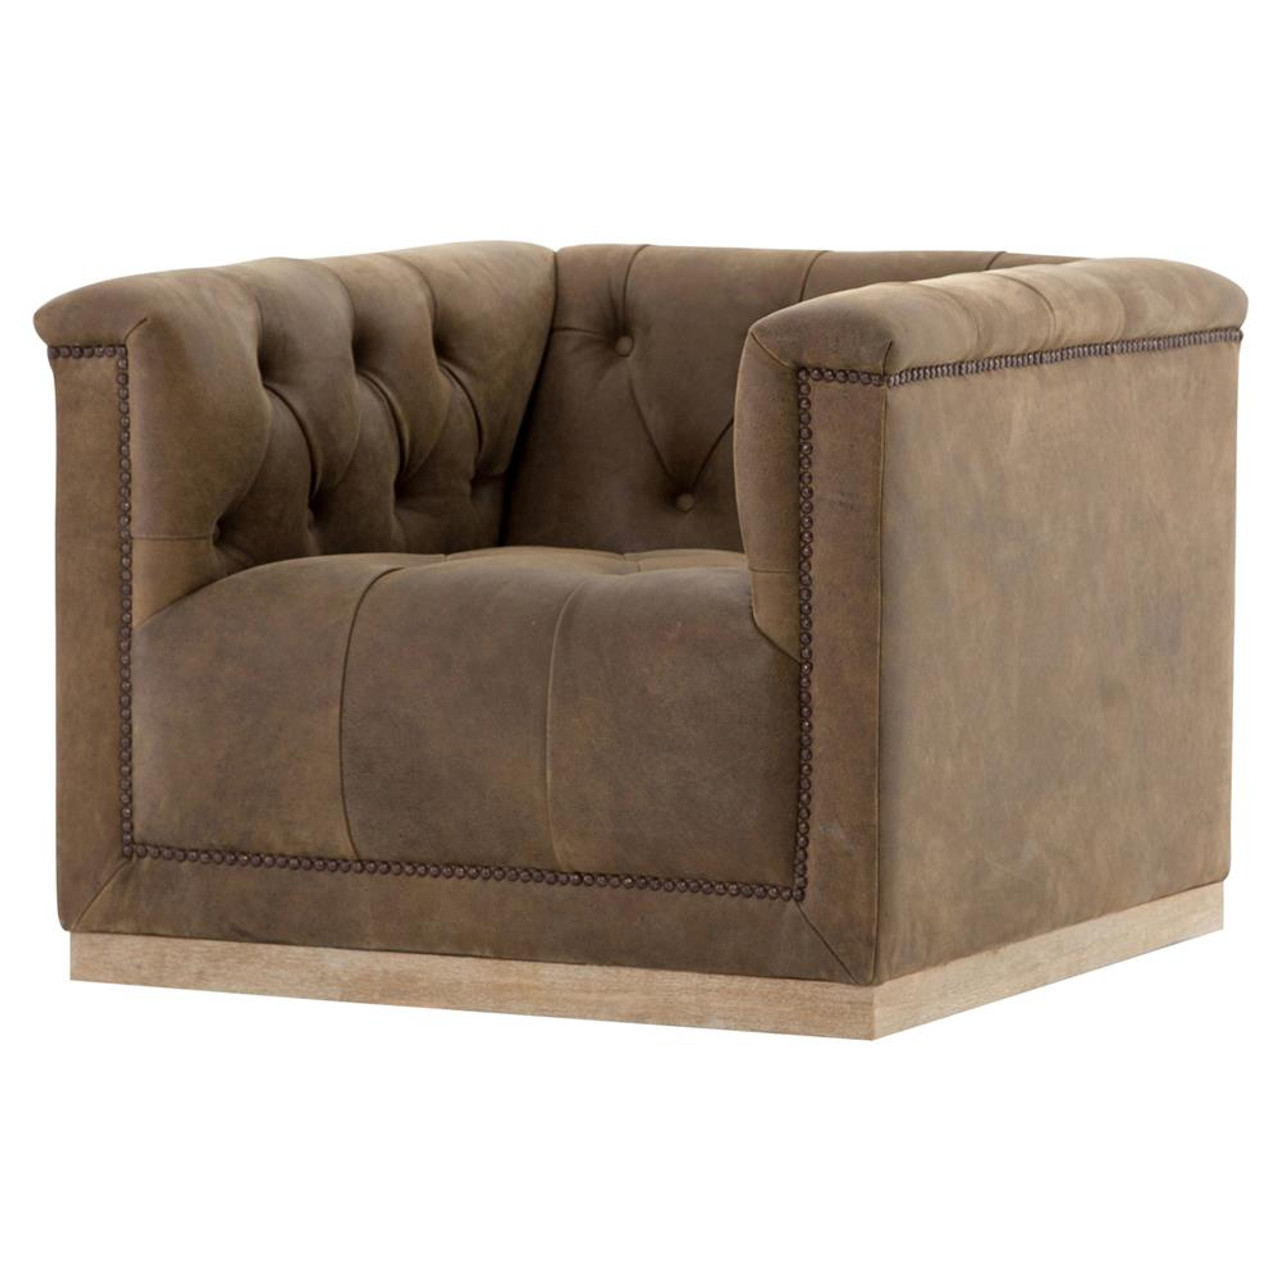 Maxx Distressed Tufted Leather Swivel Club Chair | Zin Home